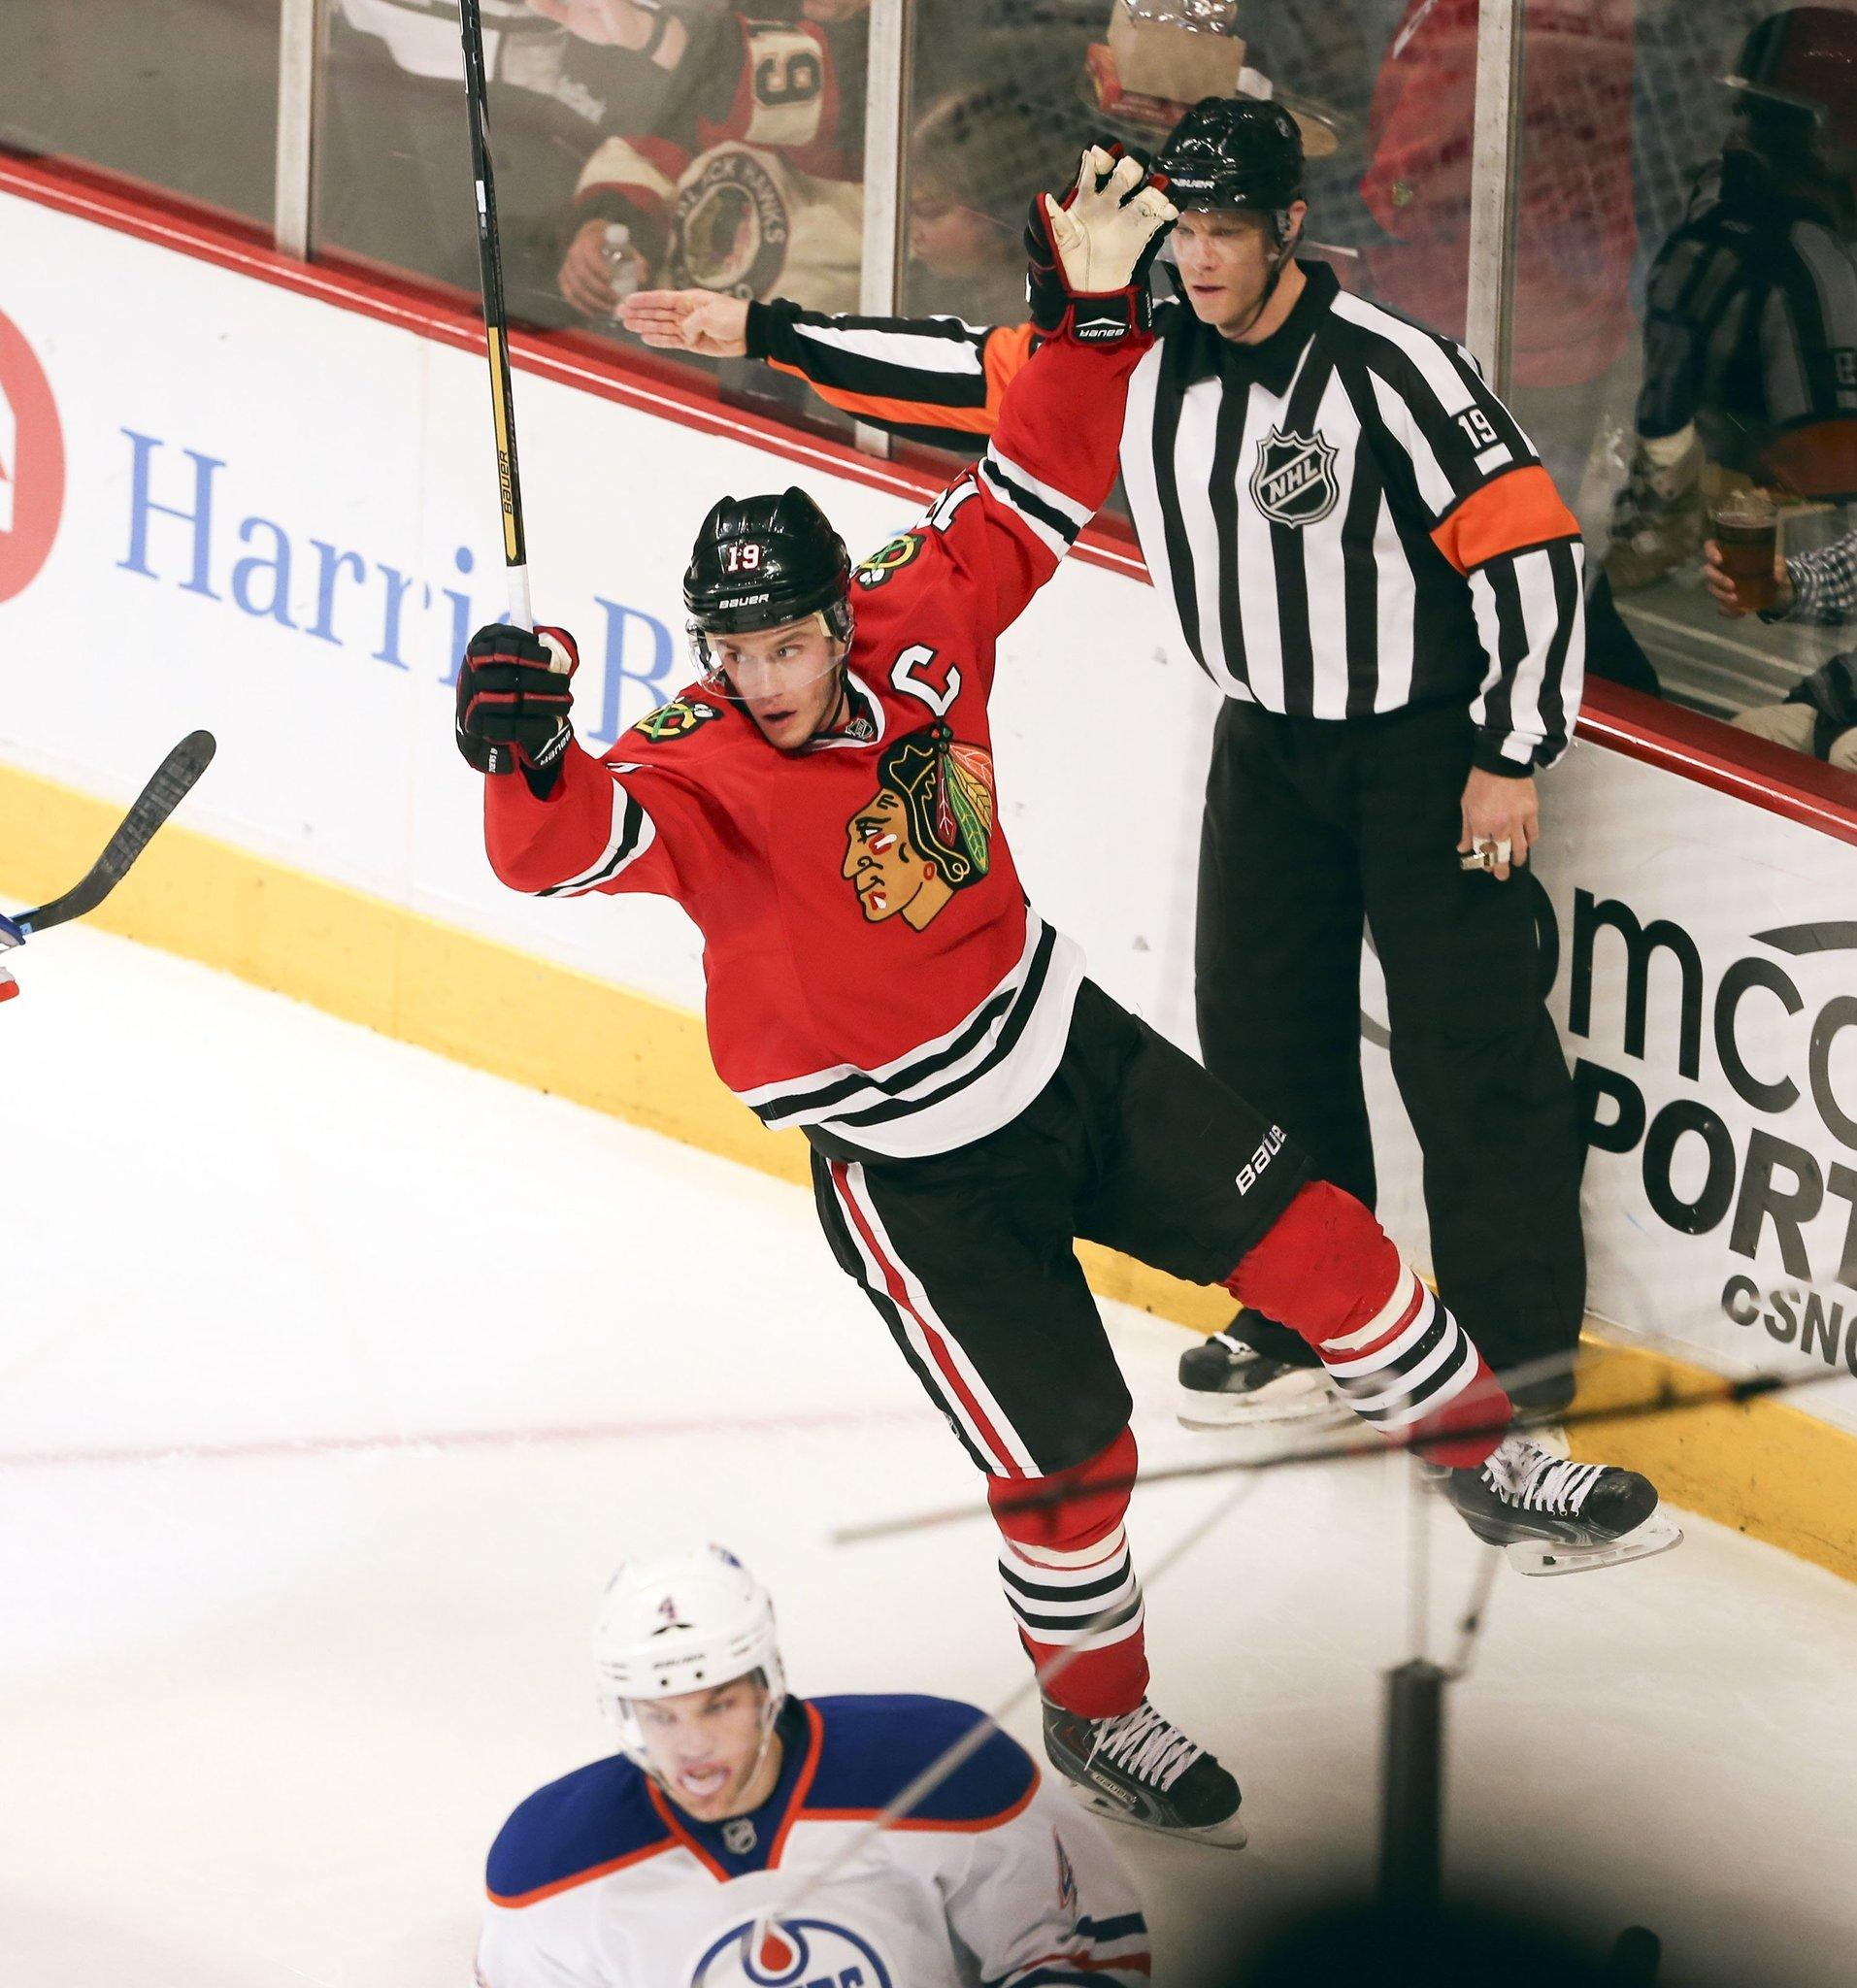 Jonathan Toews celebrates his goal against the Edmonton Oilers during the second period of their game at the United Center.